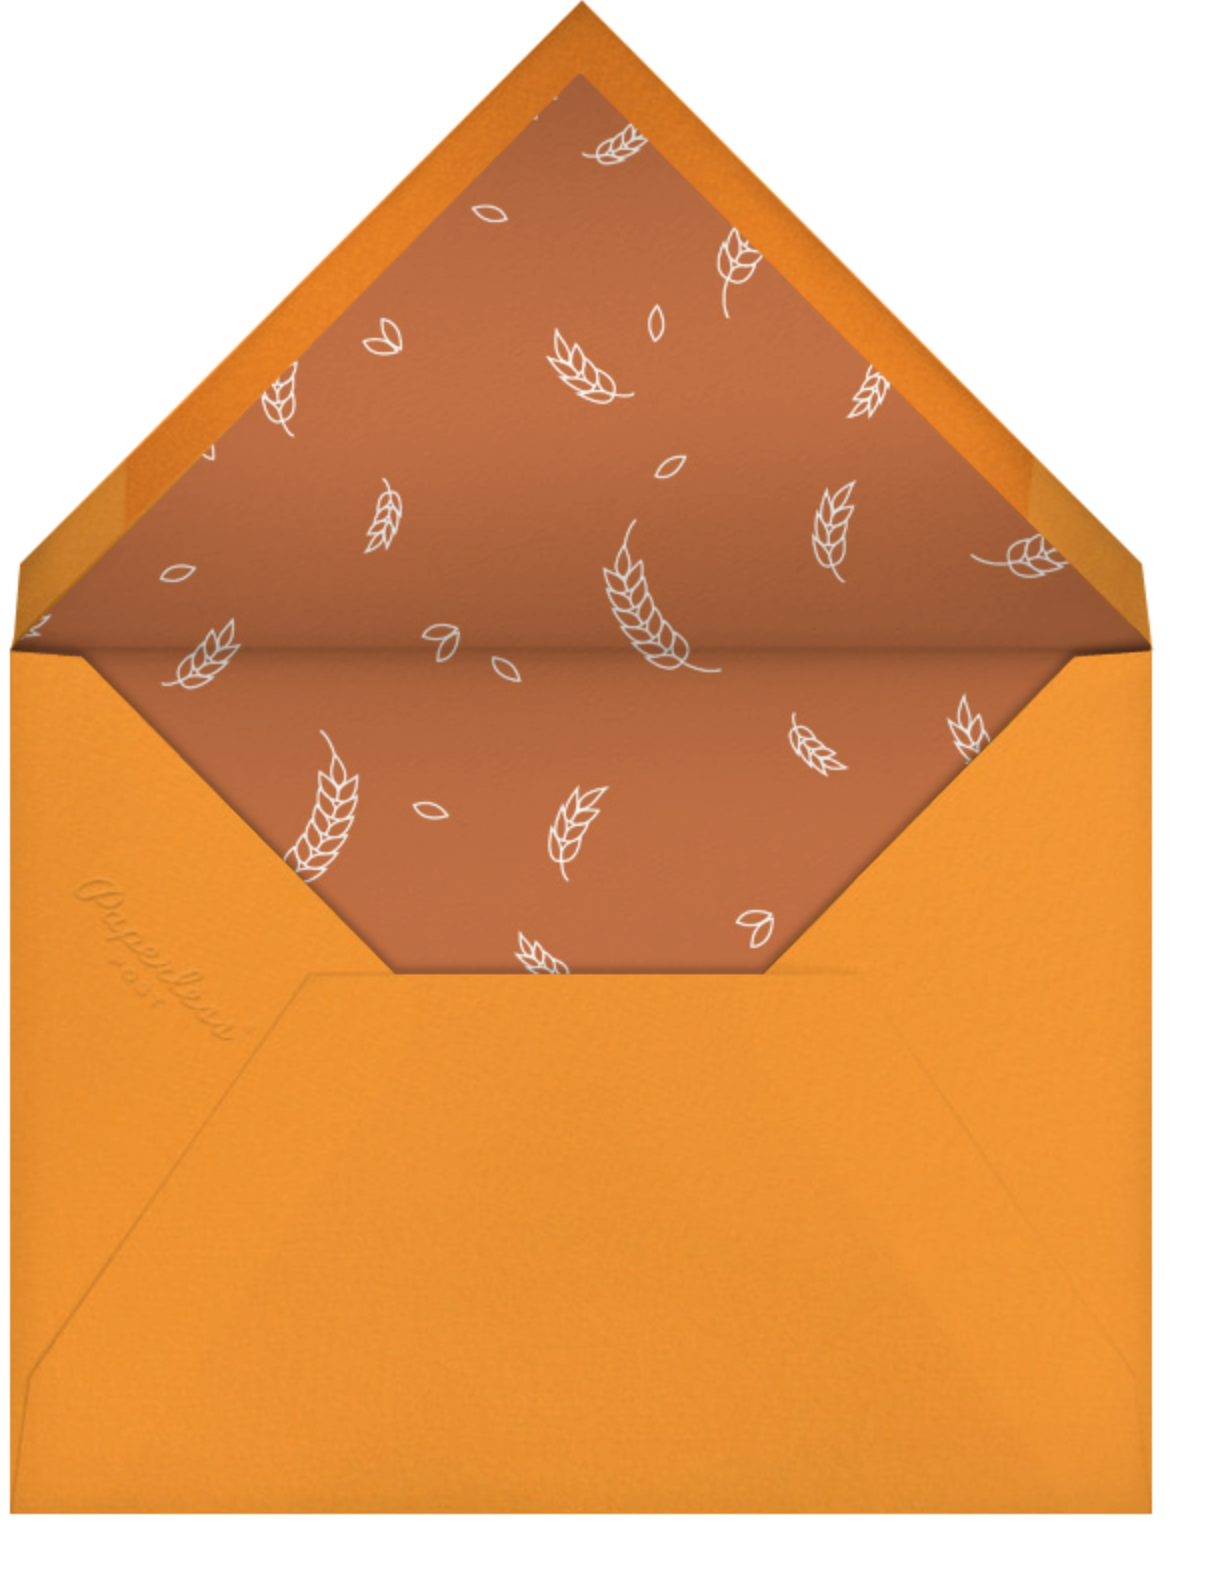 Cold Boys - Paperless Post - Happy hour - envelope back